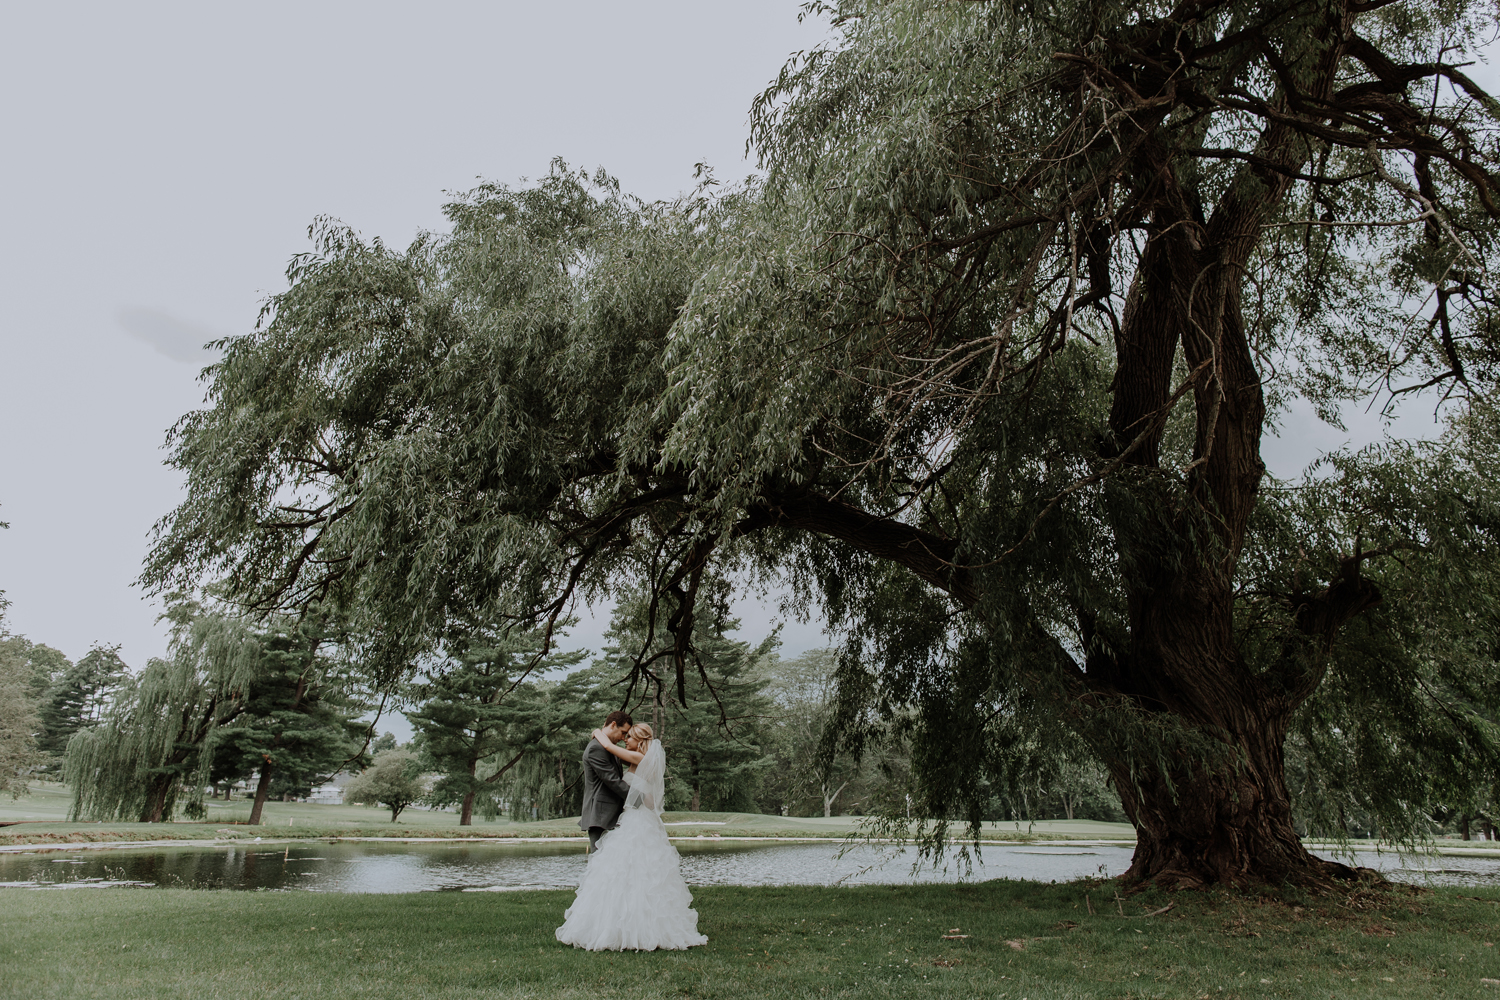 silver-creek-country-club-bride-and-groom-portrait-photography-willow-tree